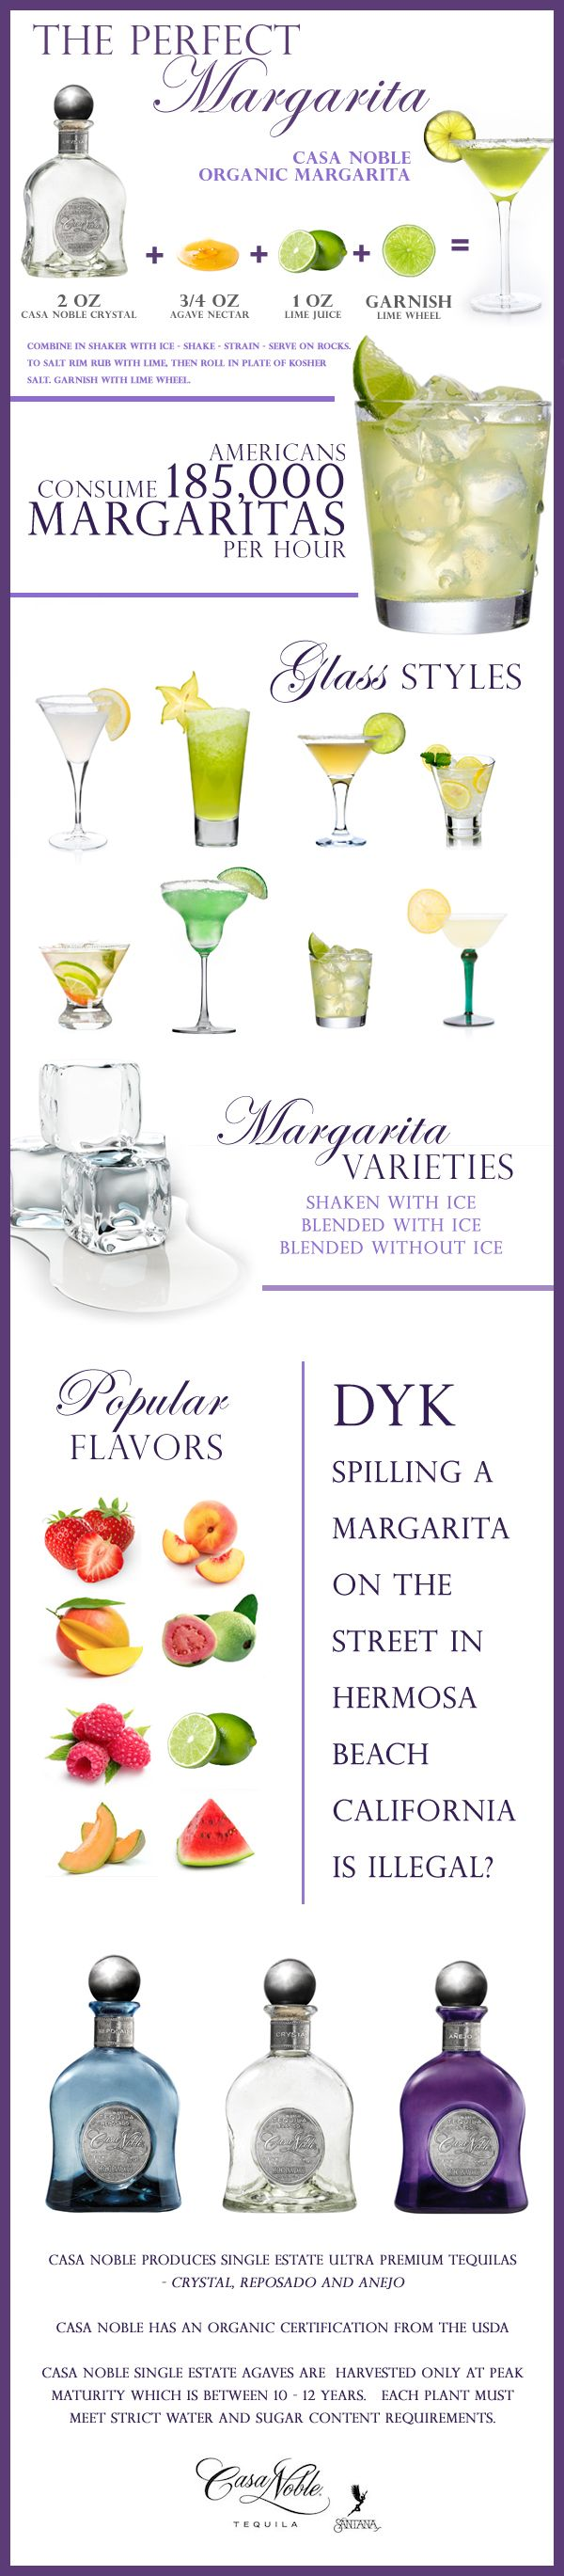 "Happy National Margarita Day! Celebrate with us on Saturday, February 22nd! #margaritas www.LiquorList.com ""The Marketplace for Adults with Taste!"" @LiquorListcom   #LiquorList"